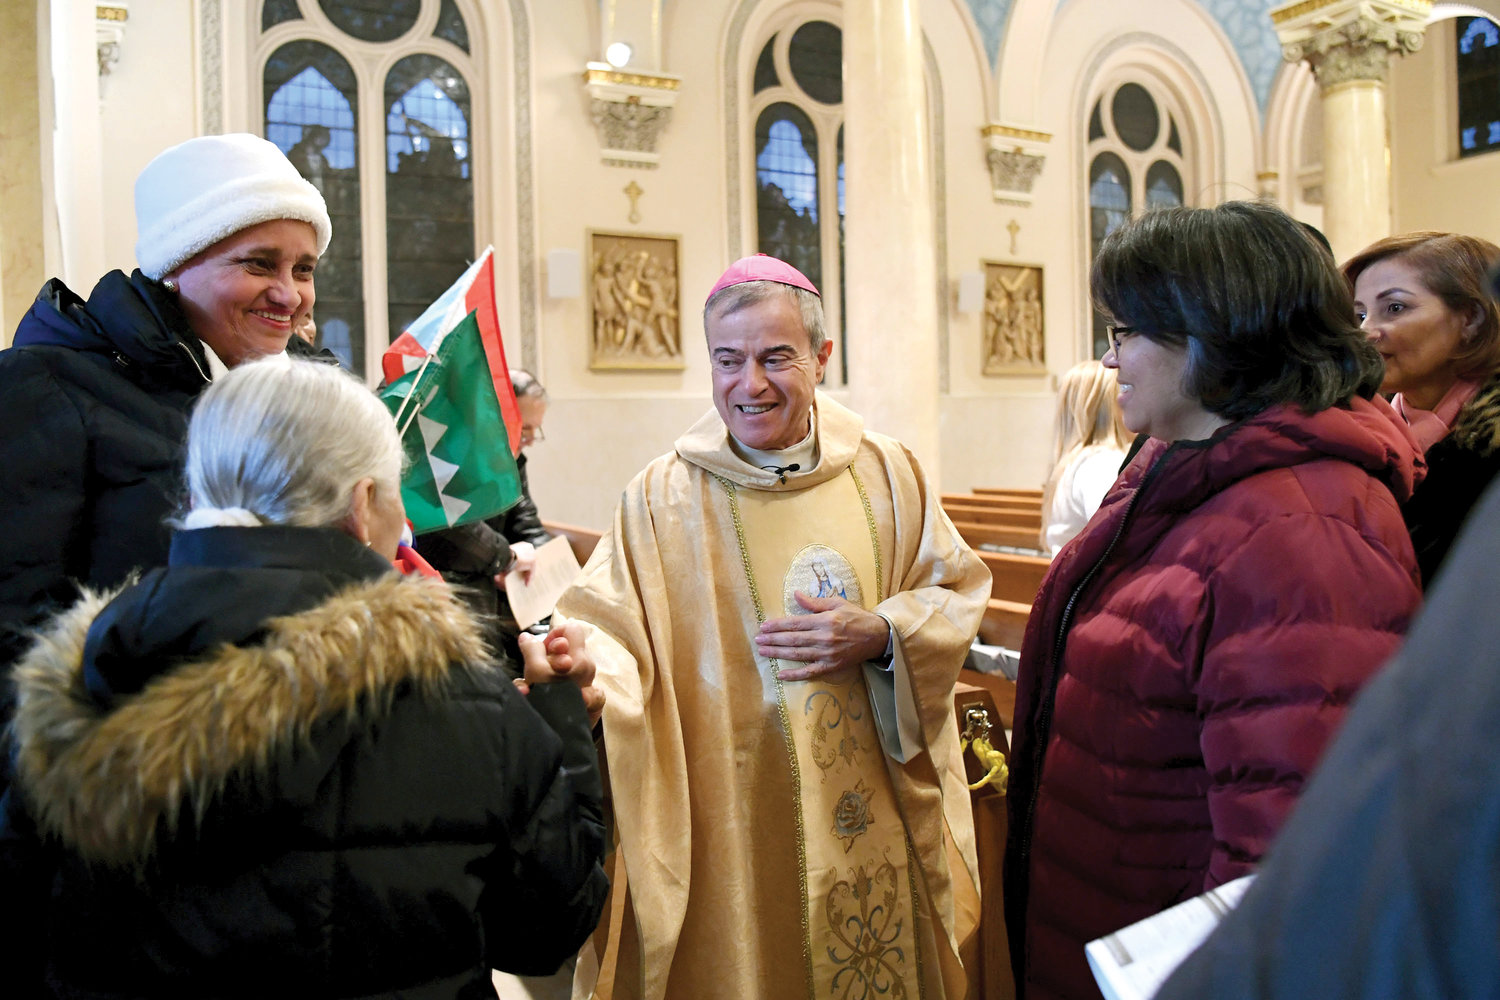 Archbishop Gonzalez warmly greets those who attended the Mass.